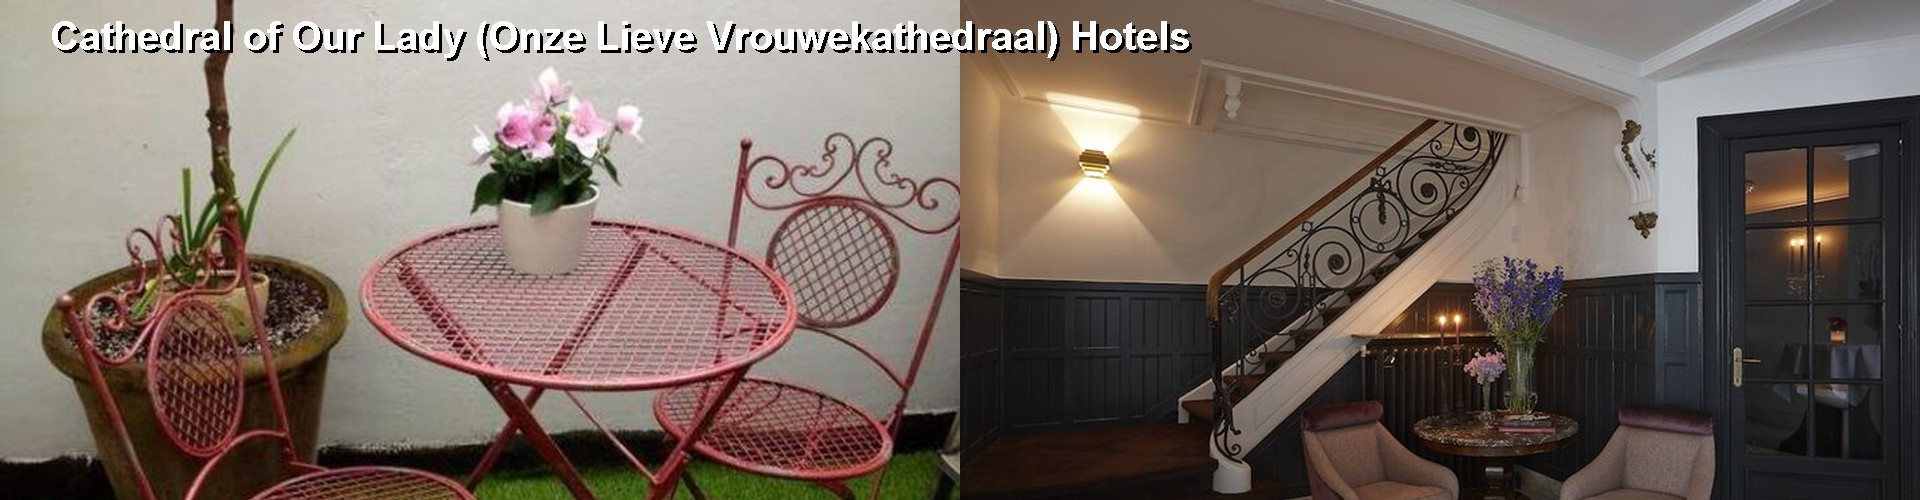 5 Best Hotels near Cathedral of Our Lady (Onze Lieve Vrouwekathedraal)